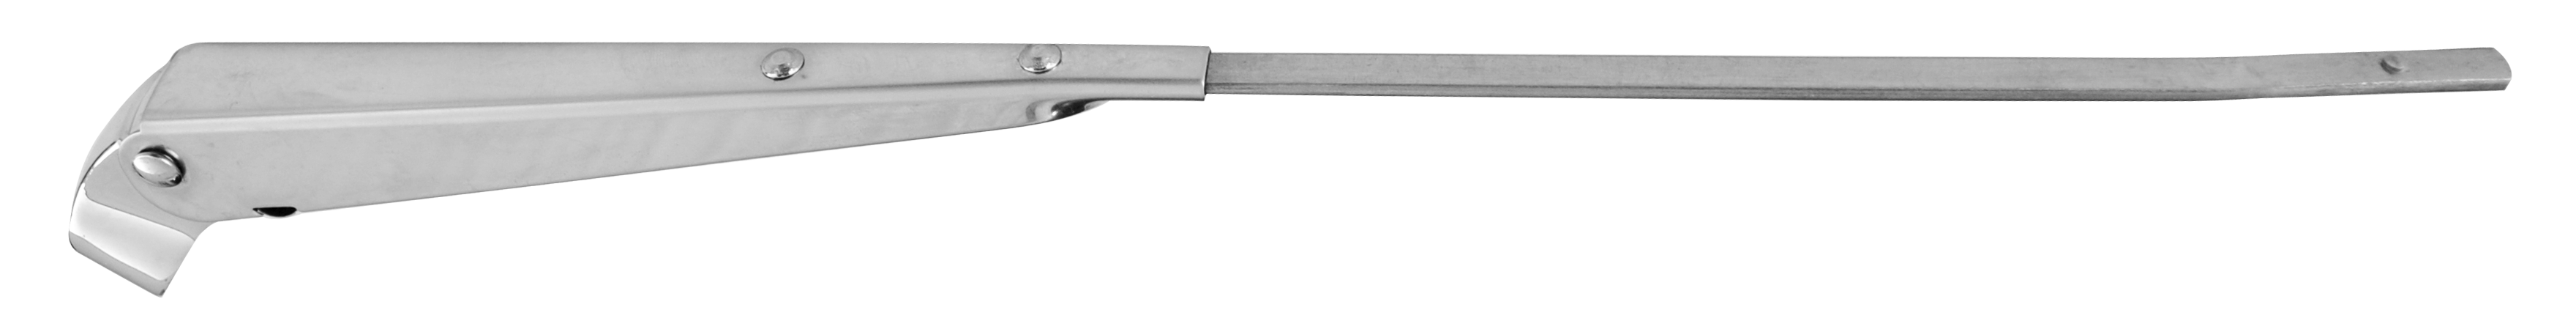 1967-72 C10 windshield wiper arm